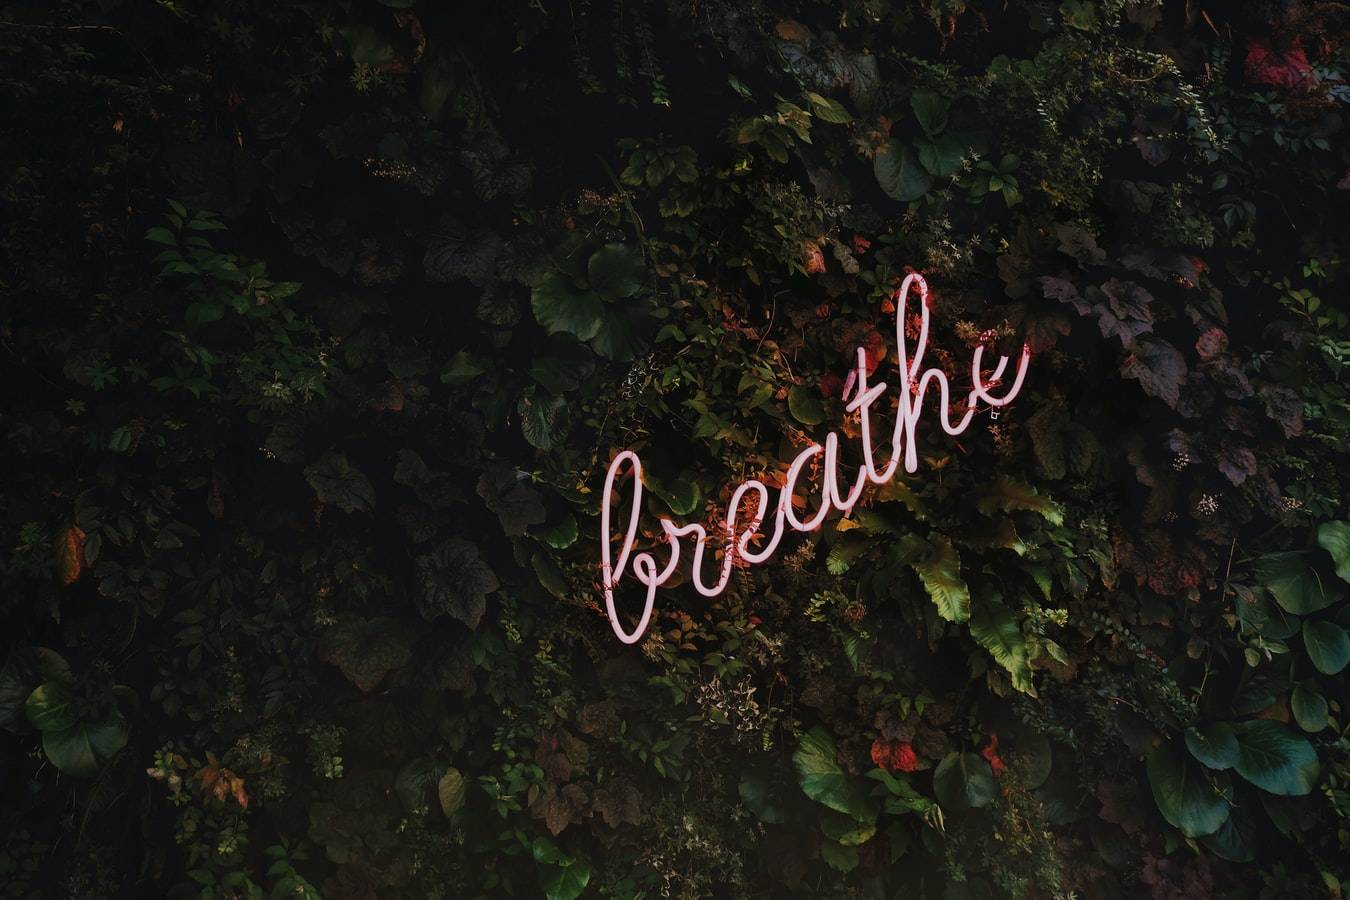 Breath Neon Signage Photo